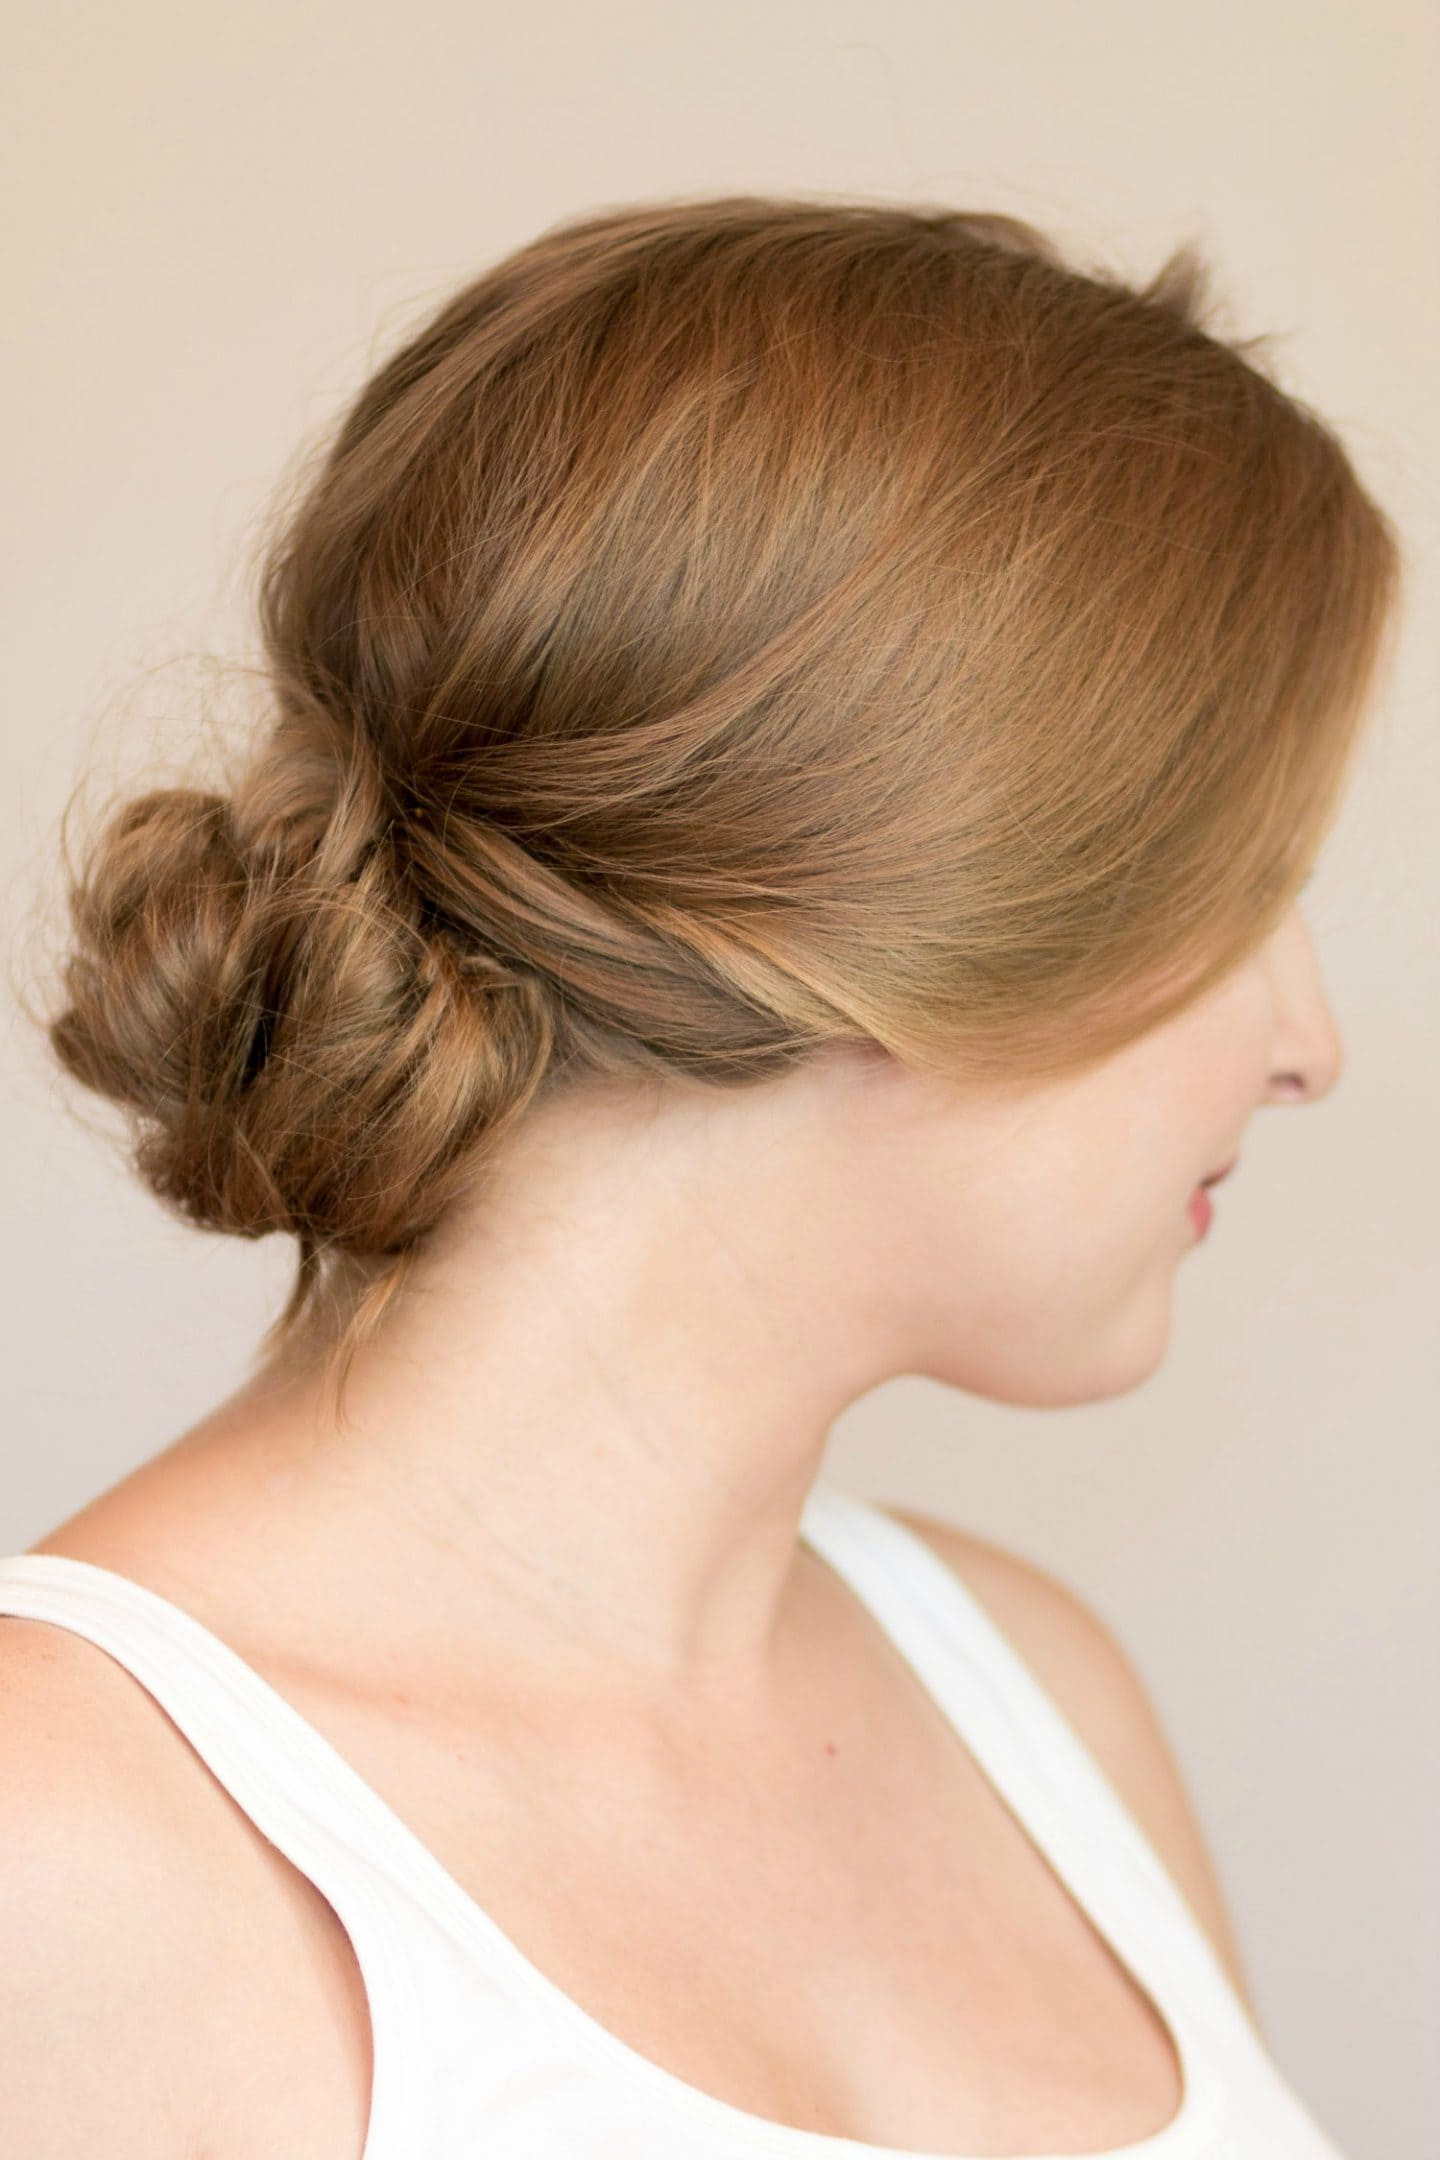 Easy messy braided bun hair tutorial   4 Easy heatless hairstyles for long hair that don't require hair styling skills or braiding! Learn how to create a faux braided ponytail, messy faux fishtail braid, twisted half-up, and messy braided bun in these easy hair tutorial by Orlando, Florida beauty blogger Ashley Brooke Nicholas! #MyHCLook sponsored by Hair Cuttery   easy hairstyles, no-heat hairstyle, faux braids, faux braid tutorial, how to braid your hair, messy bun, fishtail braid, long dirty blonde hair